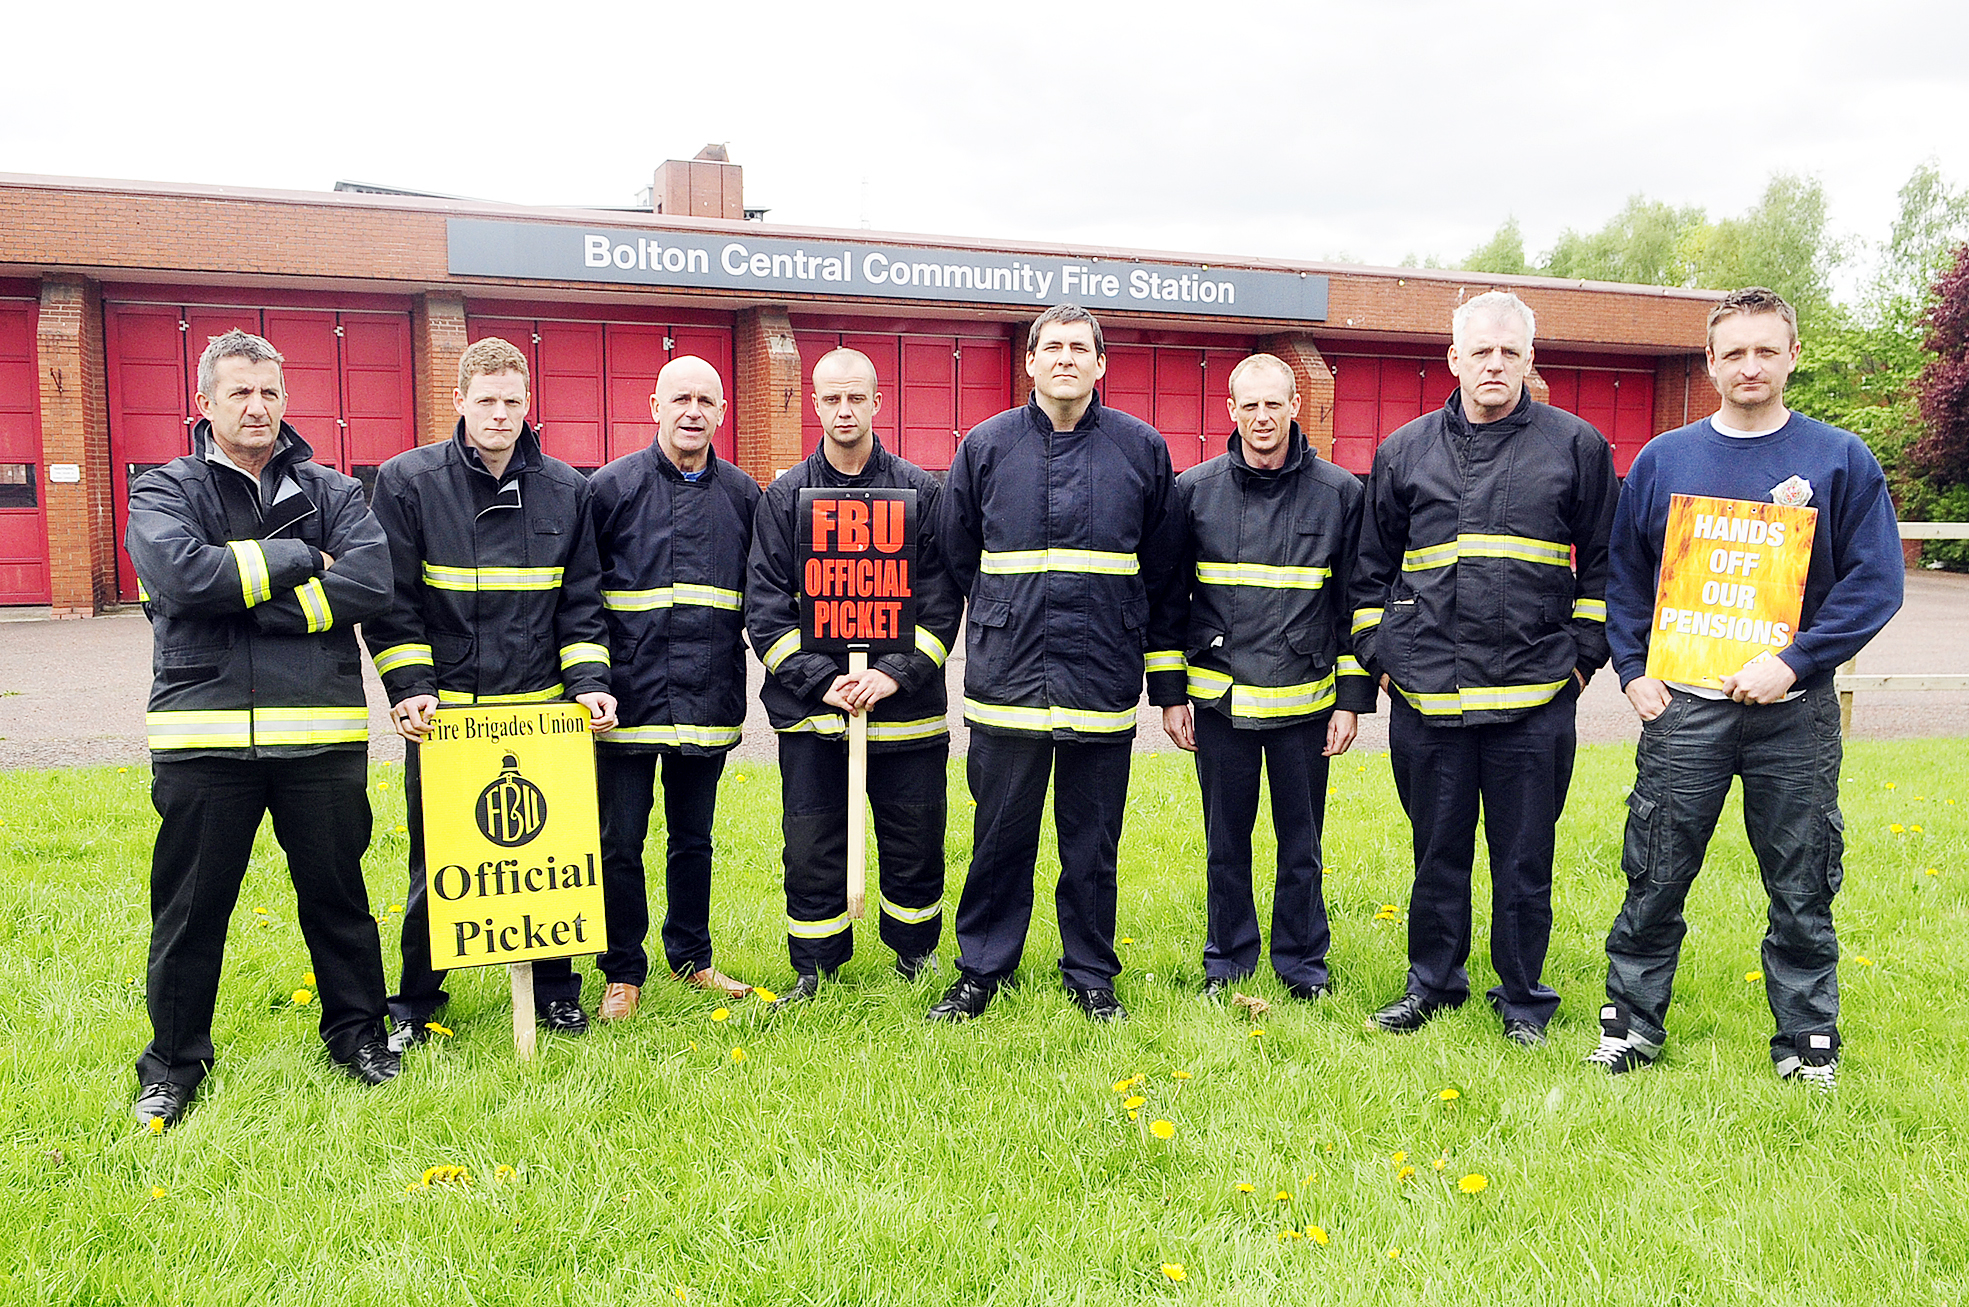 Firefighters on the picket line at Bolton Central Fire Station